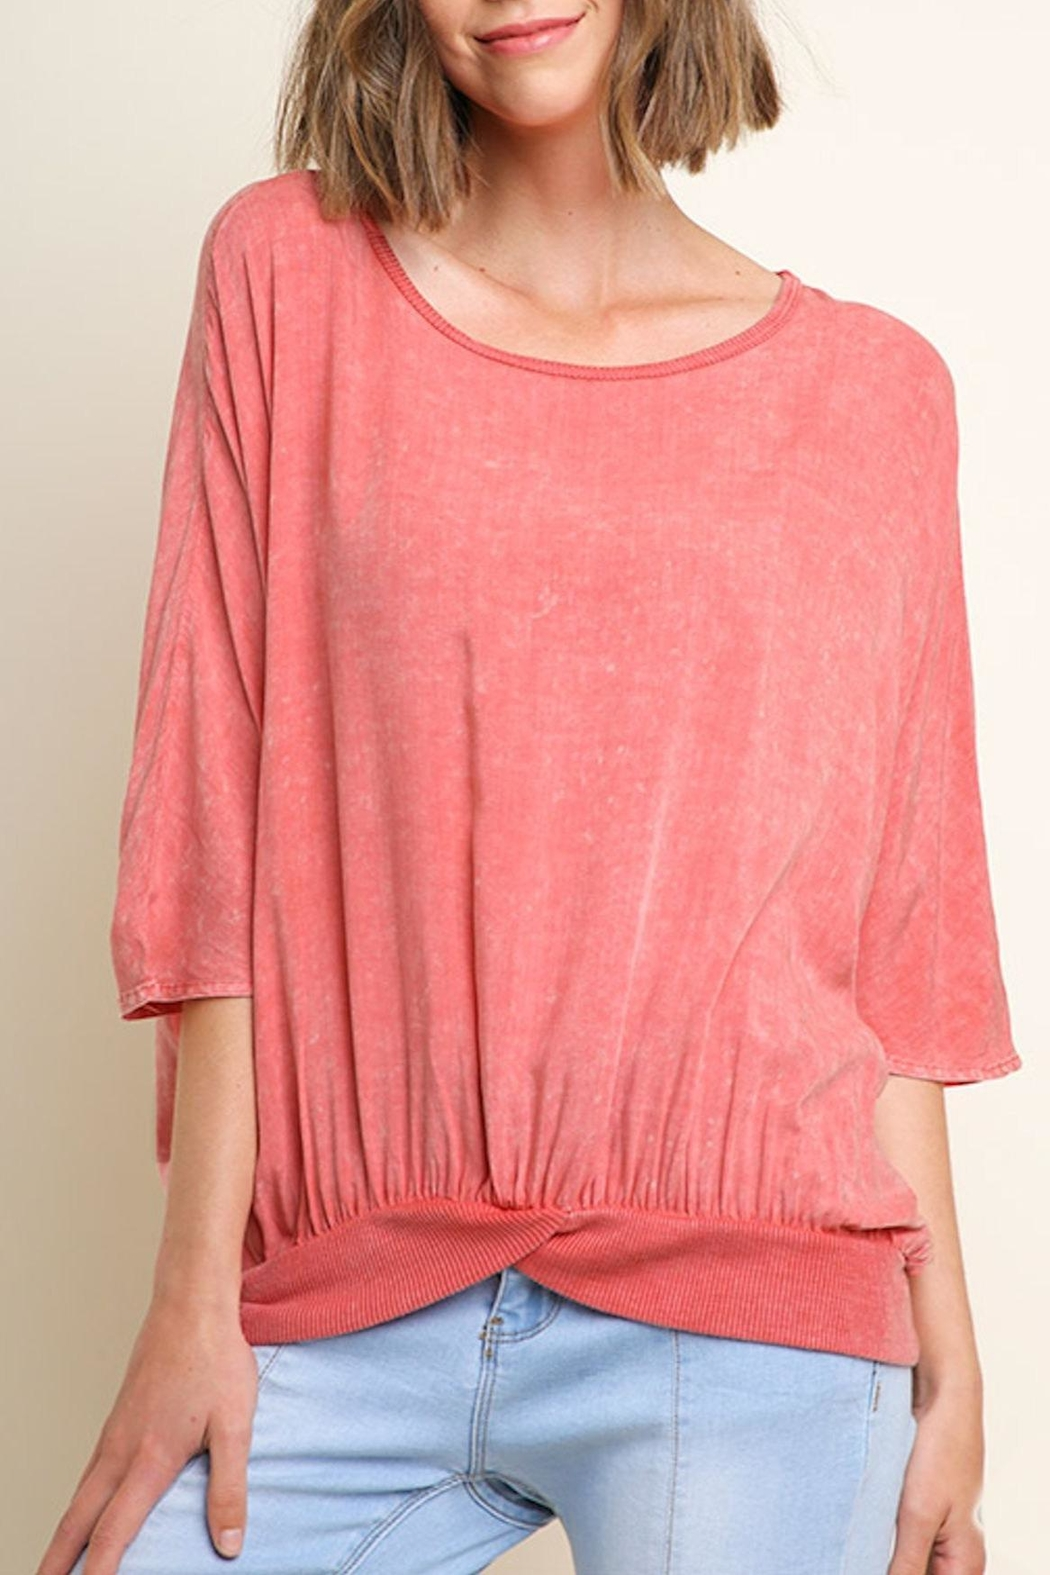 Umgee USA Washed Gathered Top - Front Cropped Image